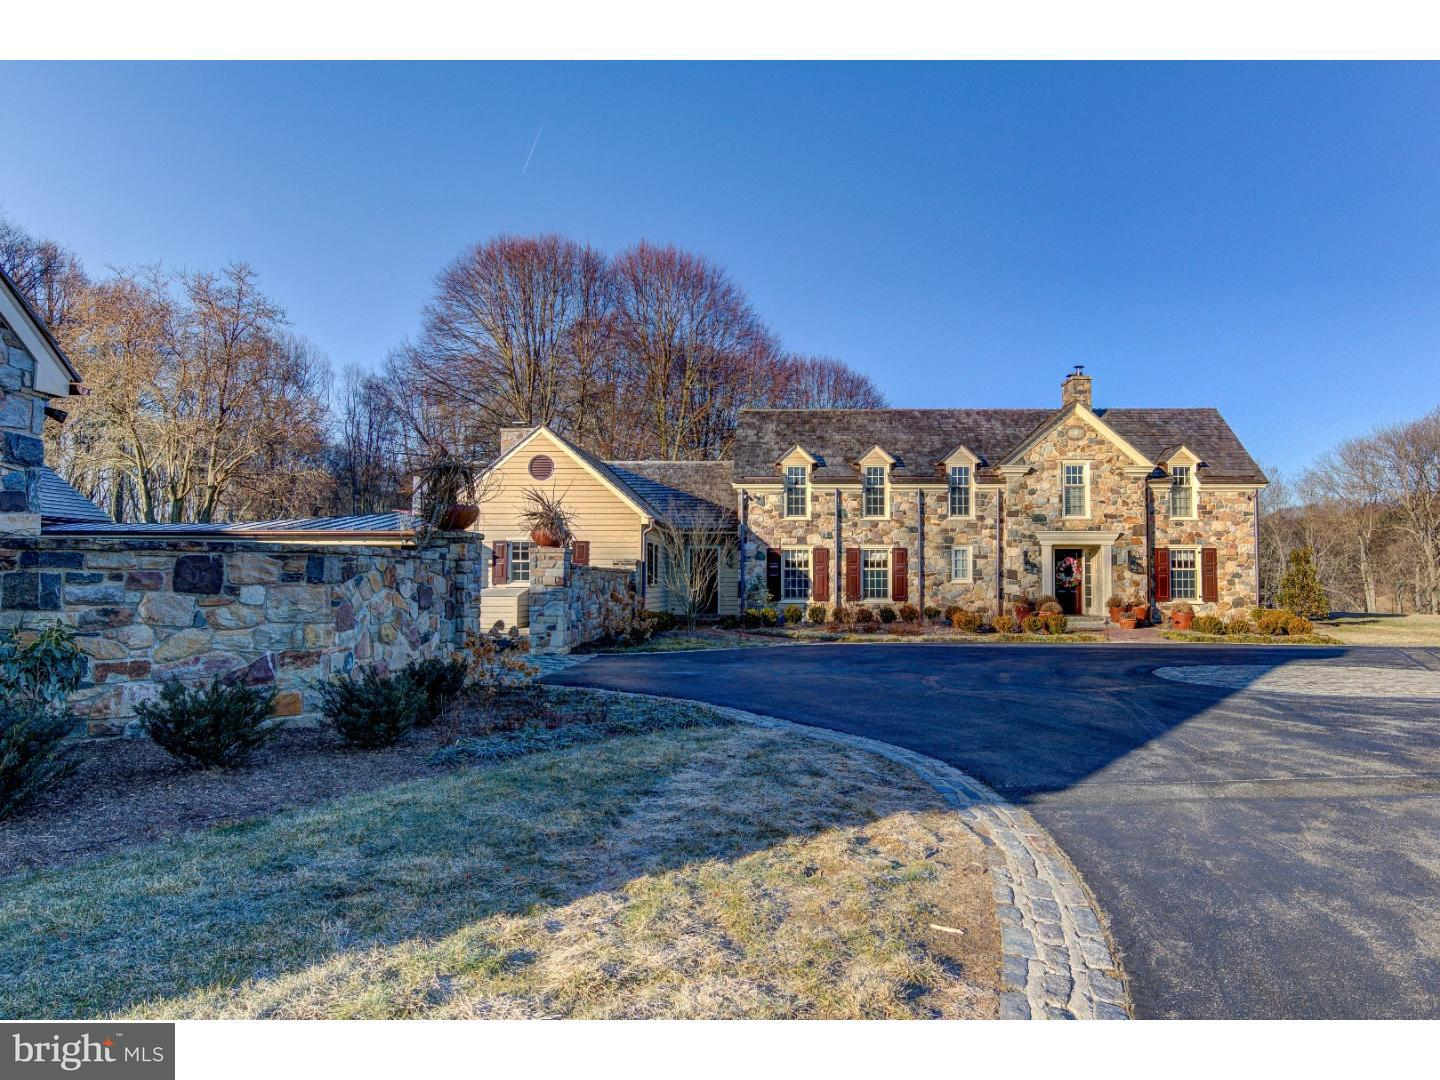 1151 STOCKFORD RD, CHADDS FORD - Listed at $3,900,000, CHADDS FORD